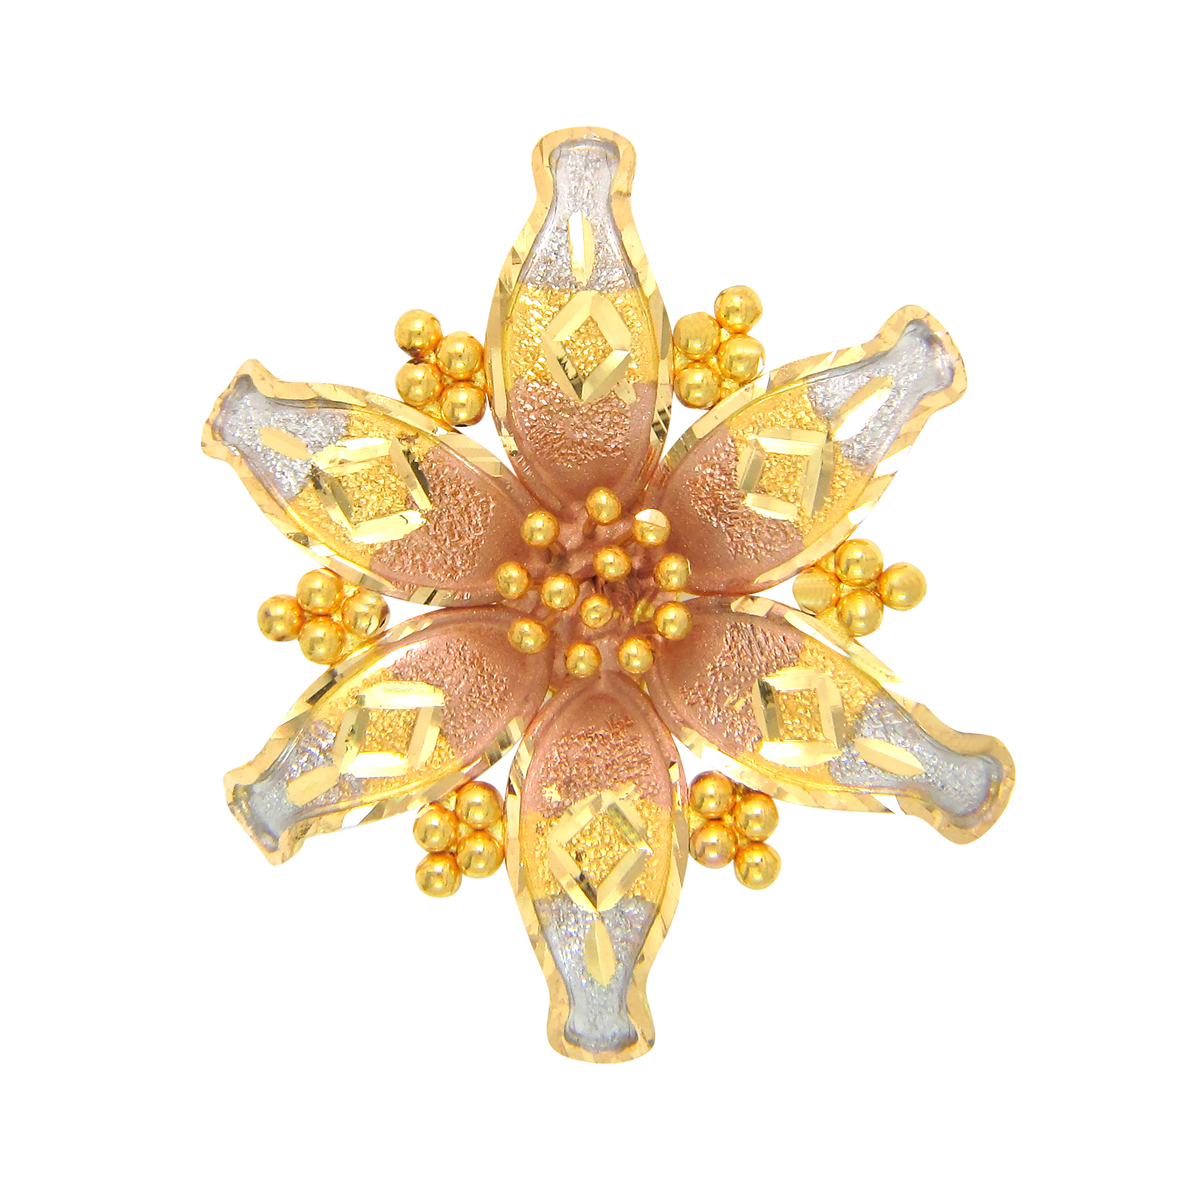 Popley 22Kt Gold Bandhan Pendant - A91